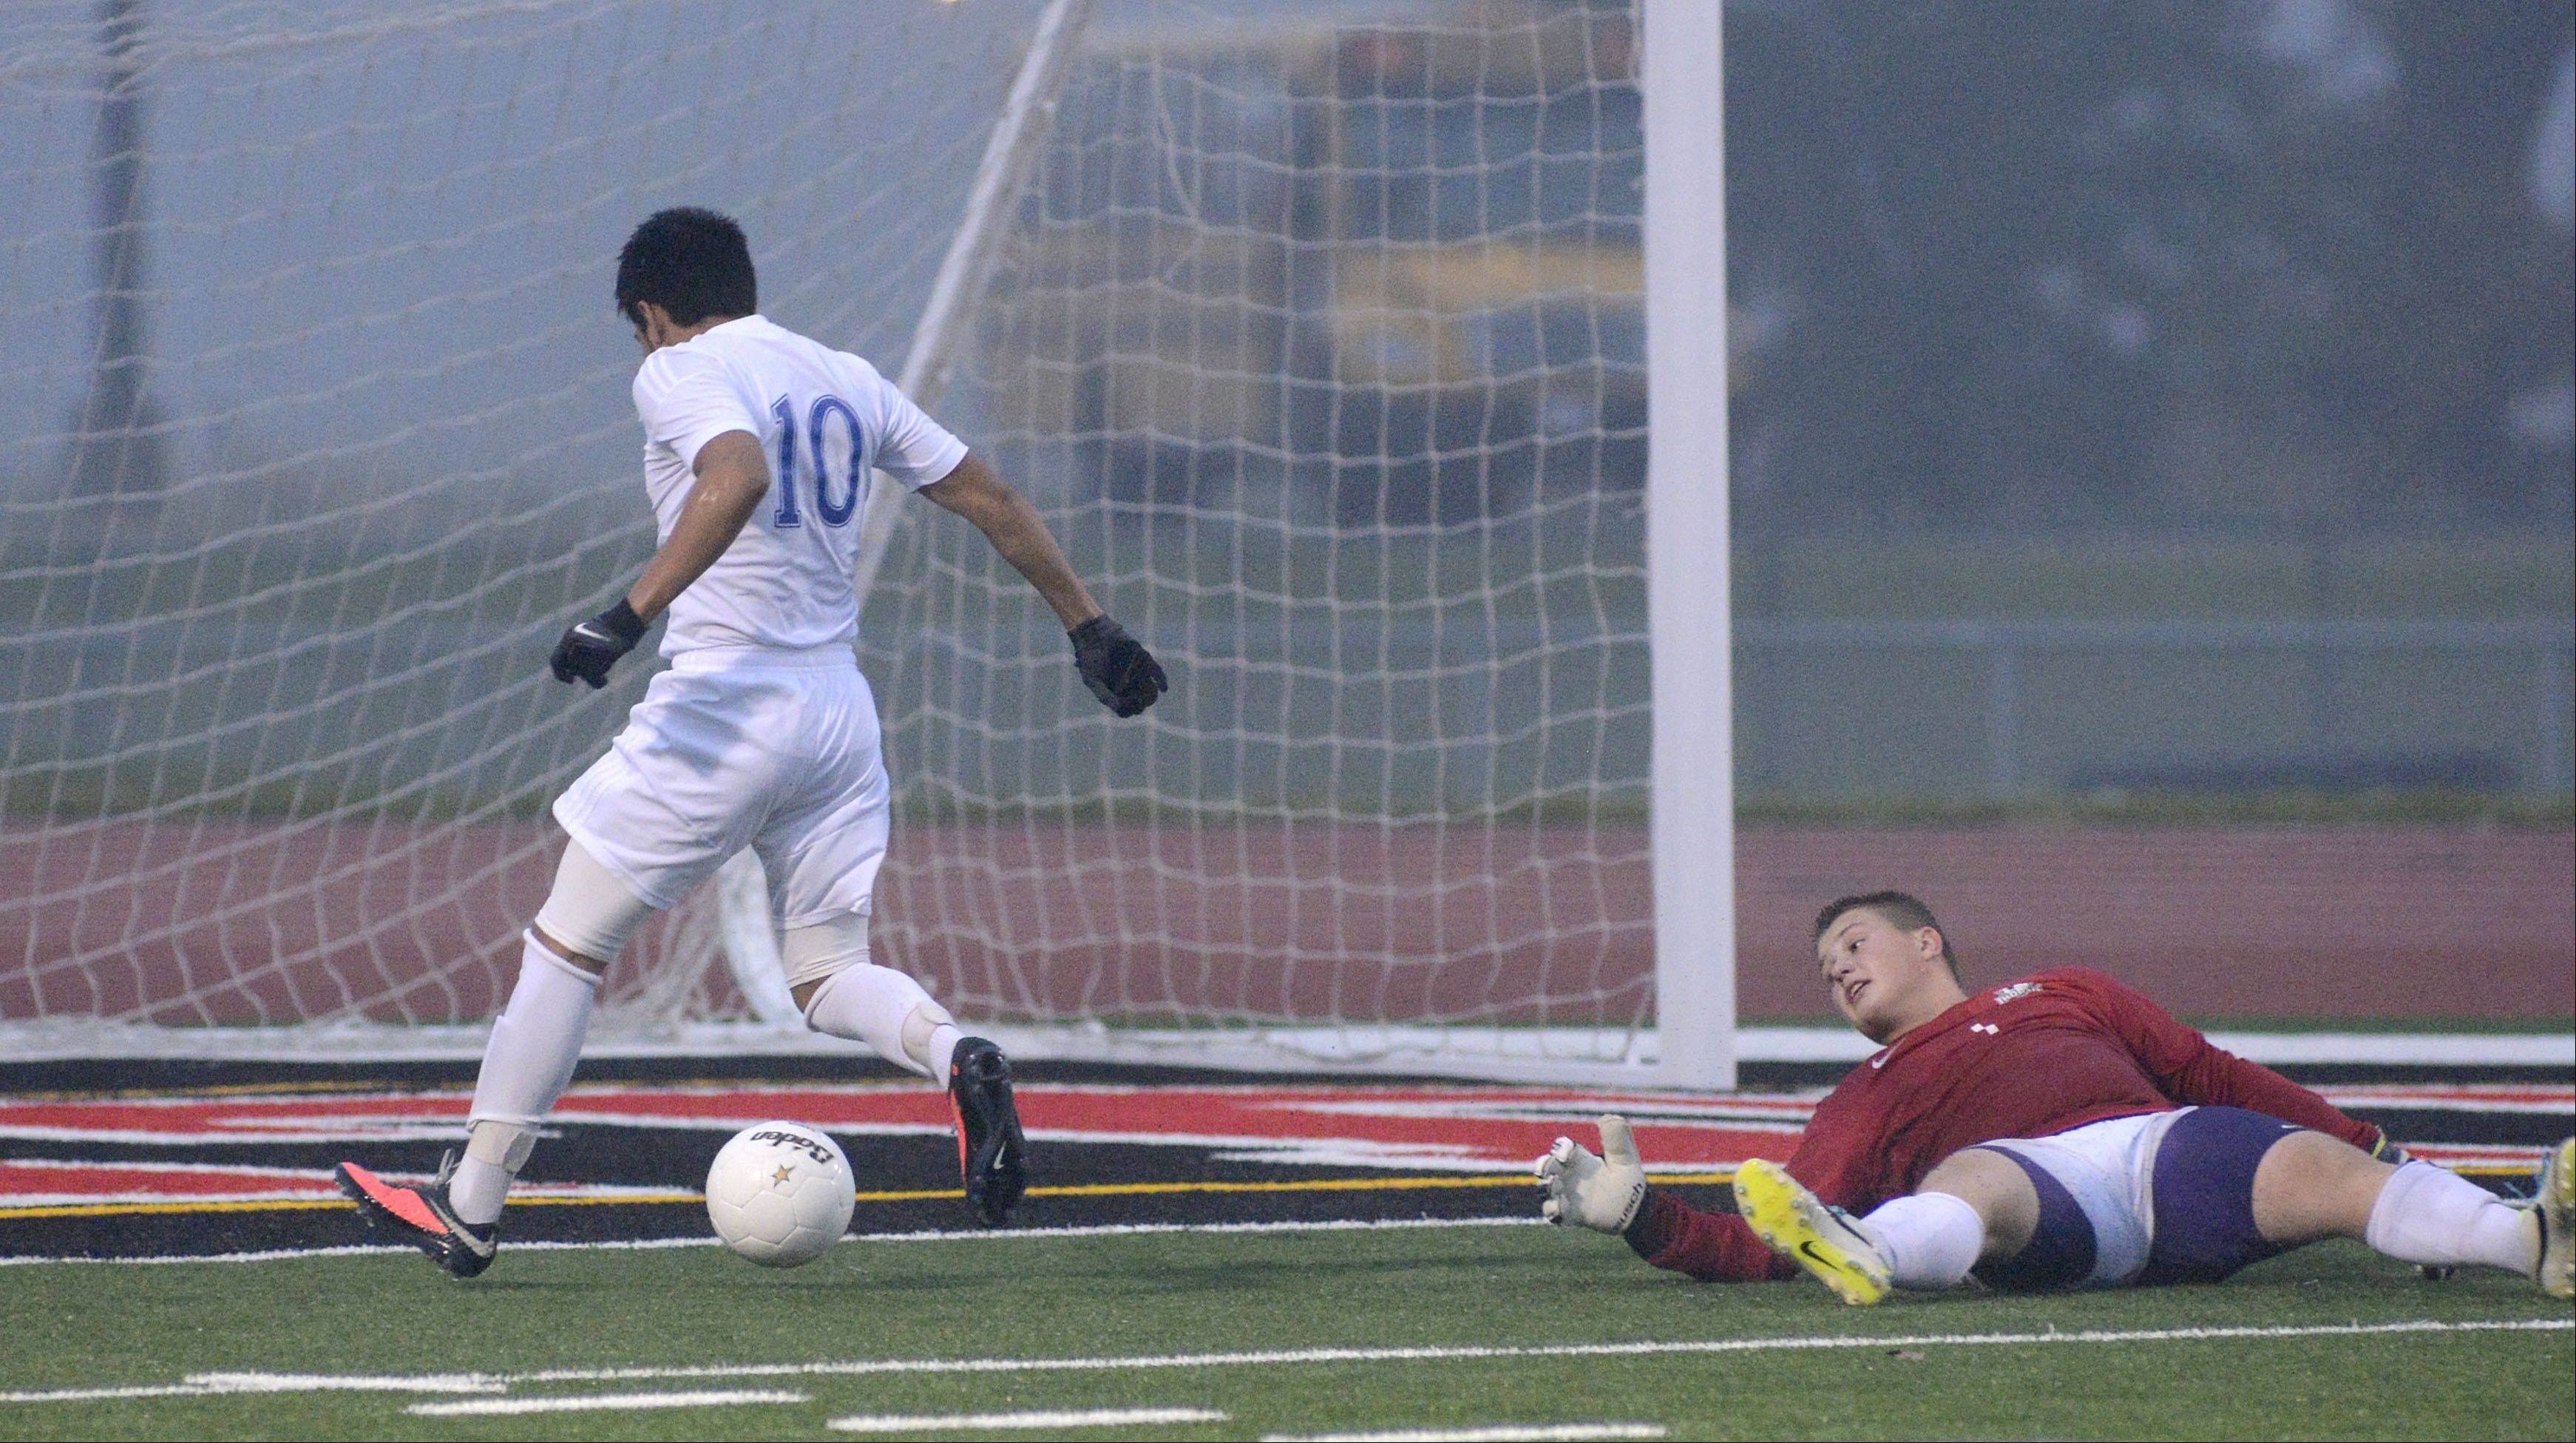 Larkin's Gonsalo Garcia trots past Hononegah goalie Henry Reynolds to score an easy goal Wednesday in Huntley.